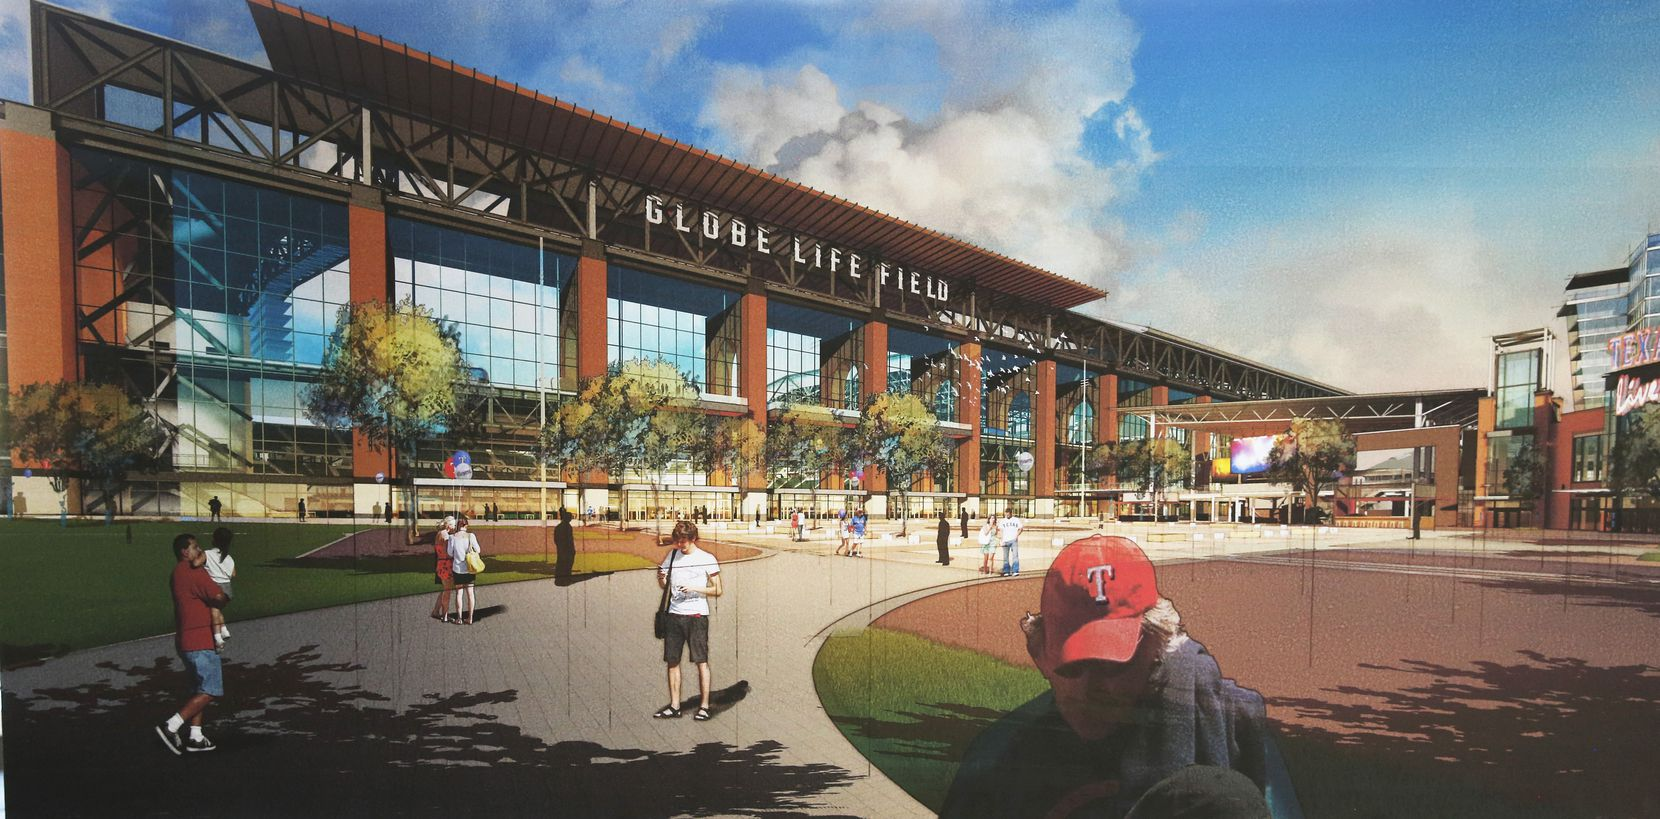 The north entrance to the Globe Life Field, alongside the Texas Live! entertainment complex